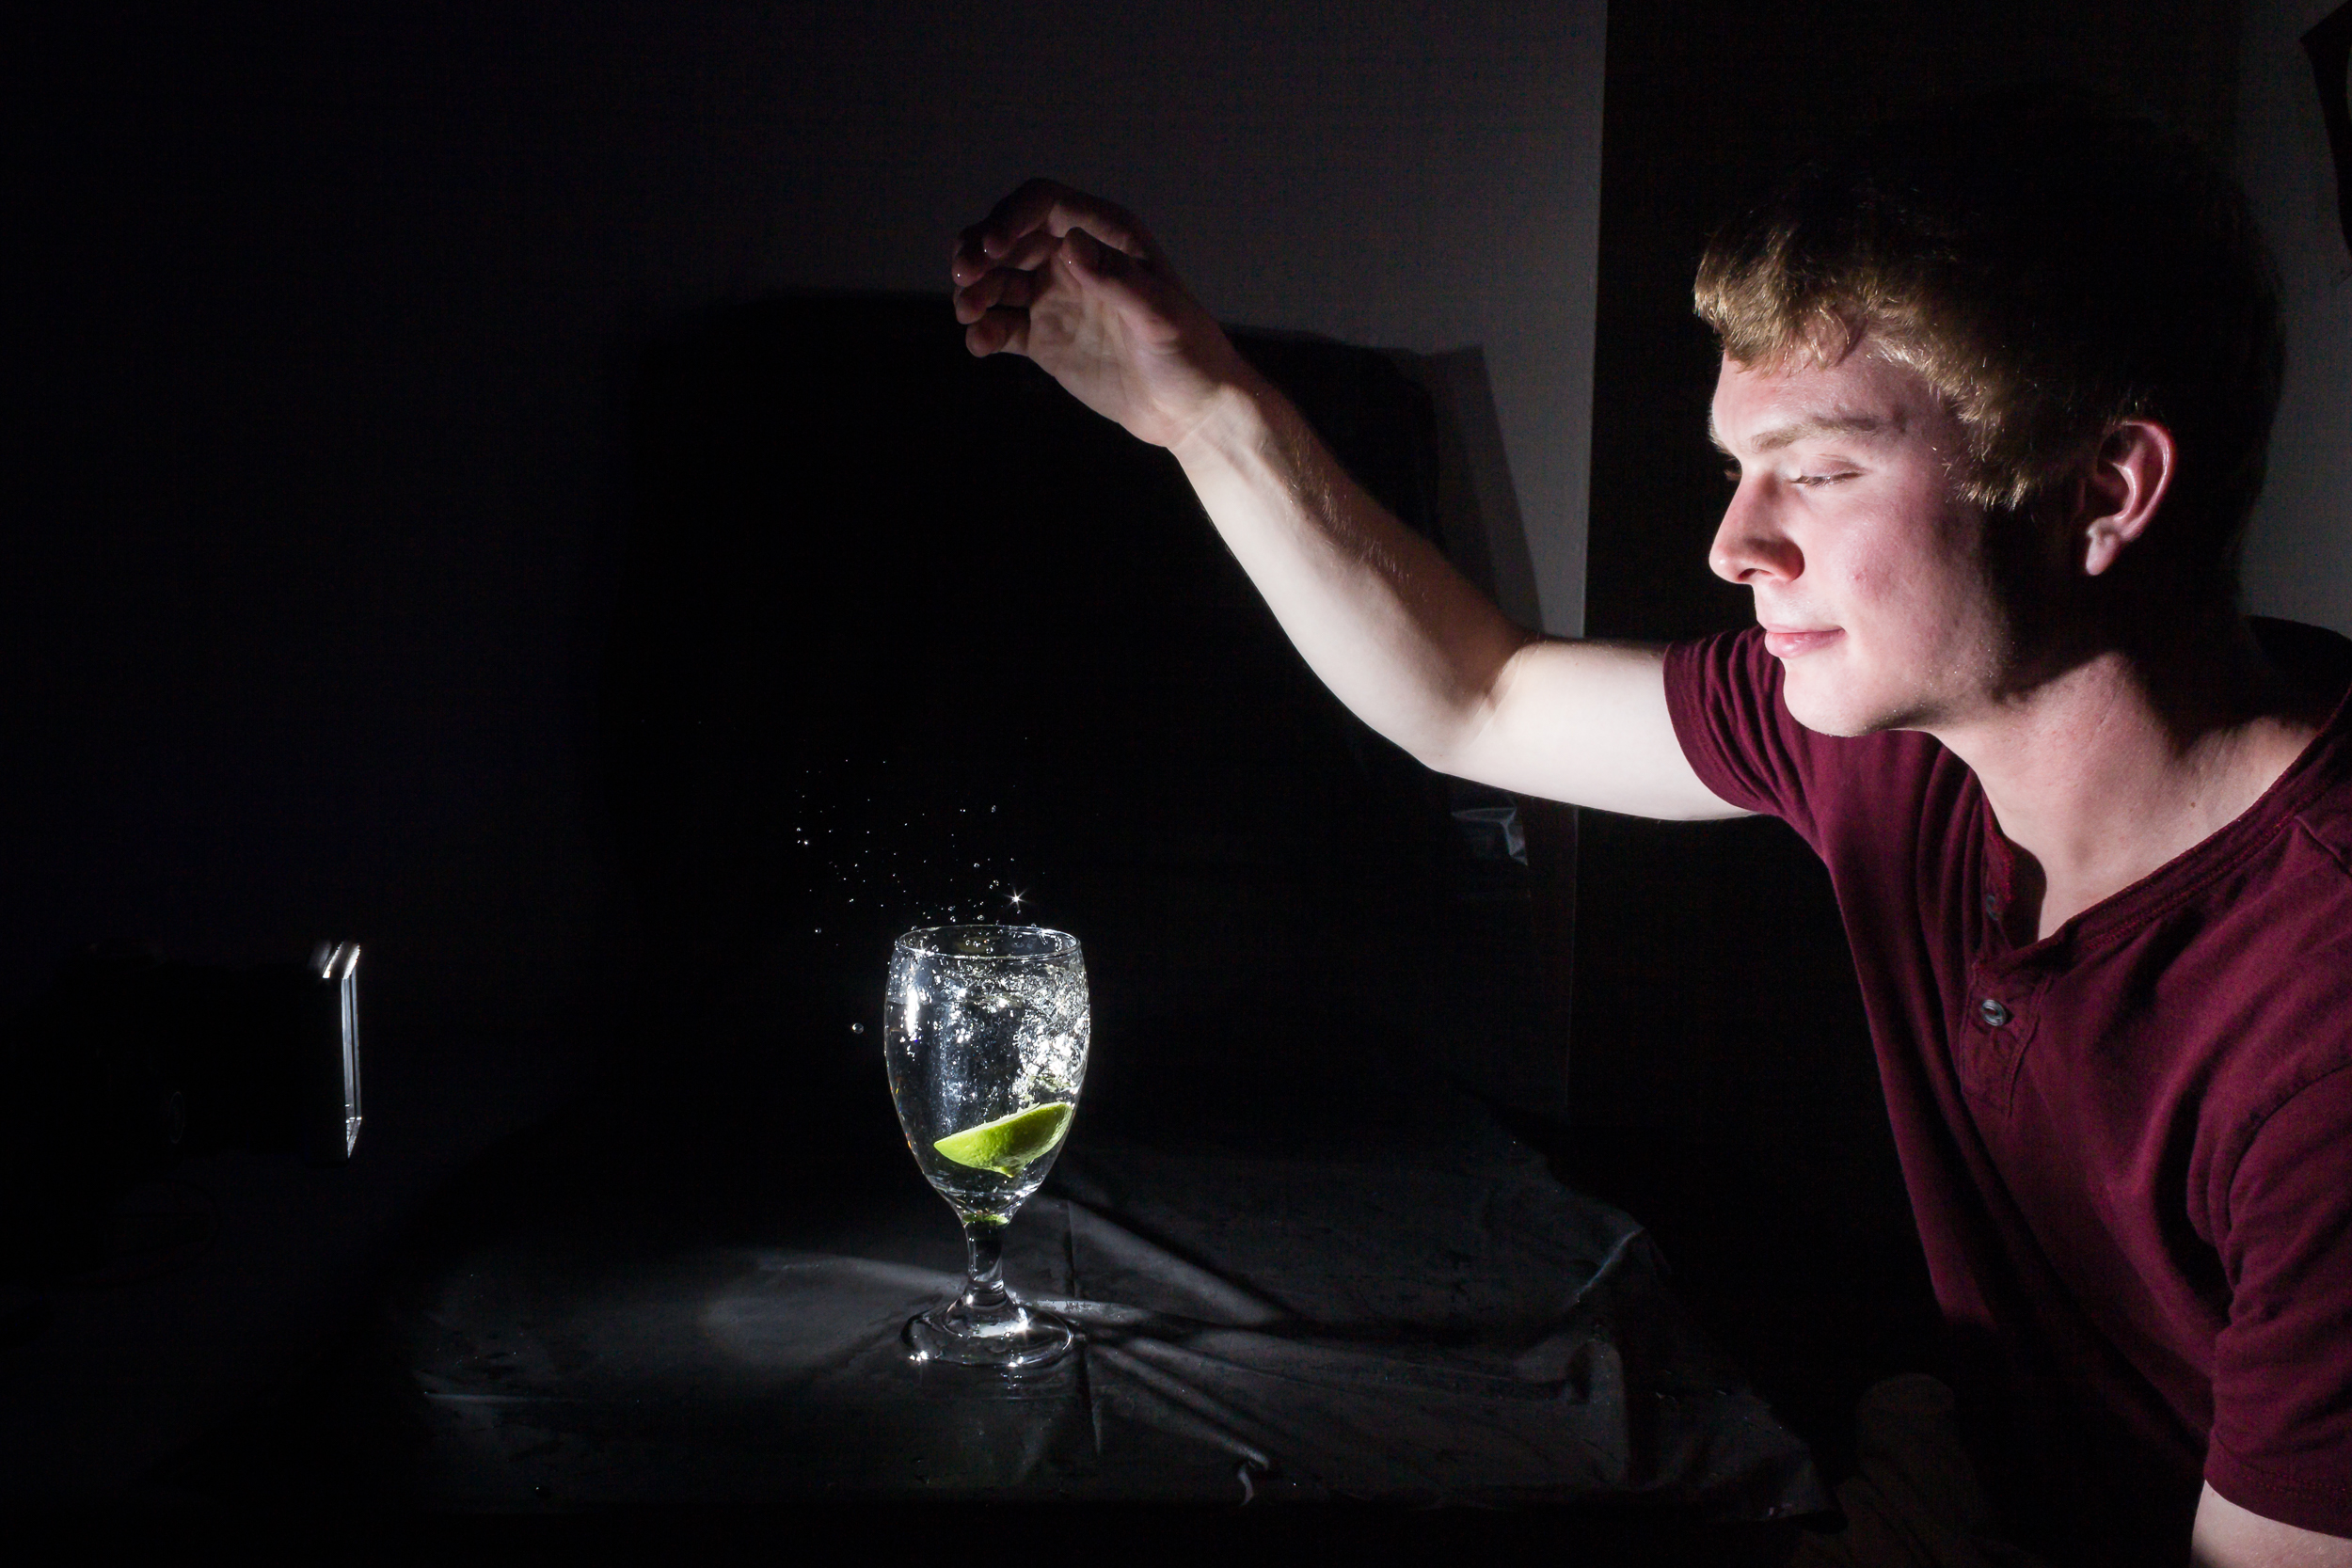 Me in 2014 dropping fruit into a wine glass. I programmed the software to fire the flash a few milliseconds after detecting the splash. I found that the images were more interesting with this configuration. The delay gave the splash above the glass and the bubbles inside the glass more time to develop into interesting shapes.